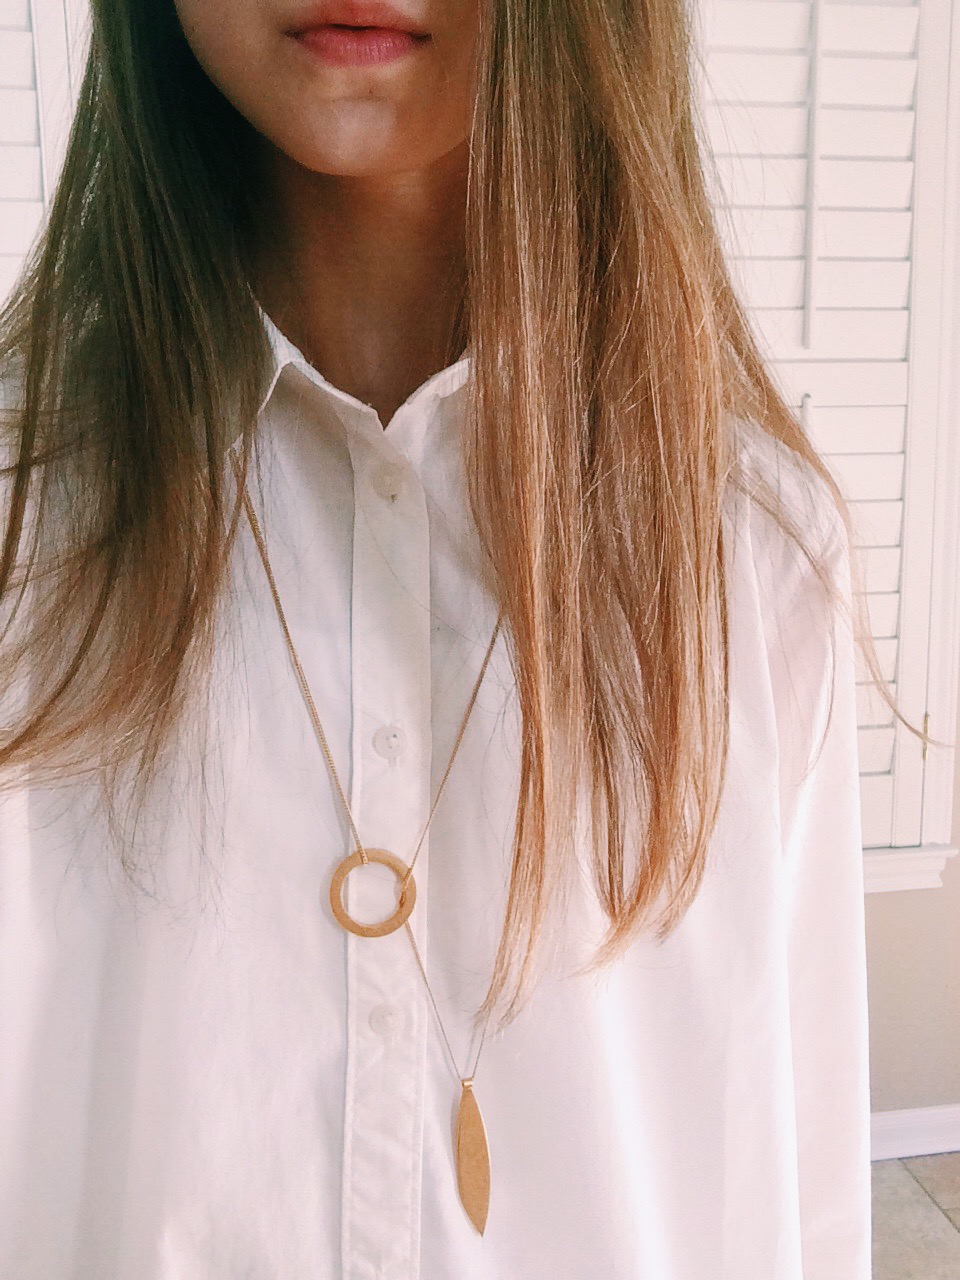 Shirt: Madewell, Necklace: Madewell